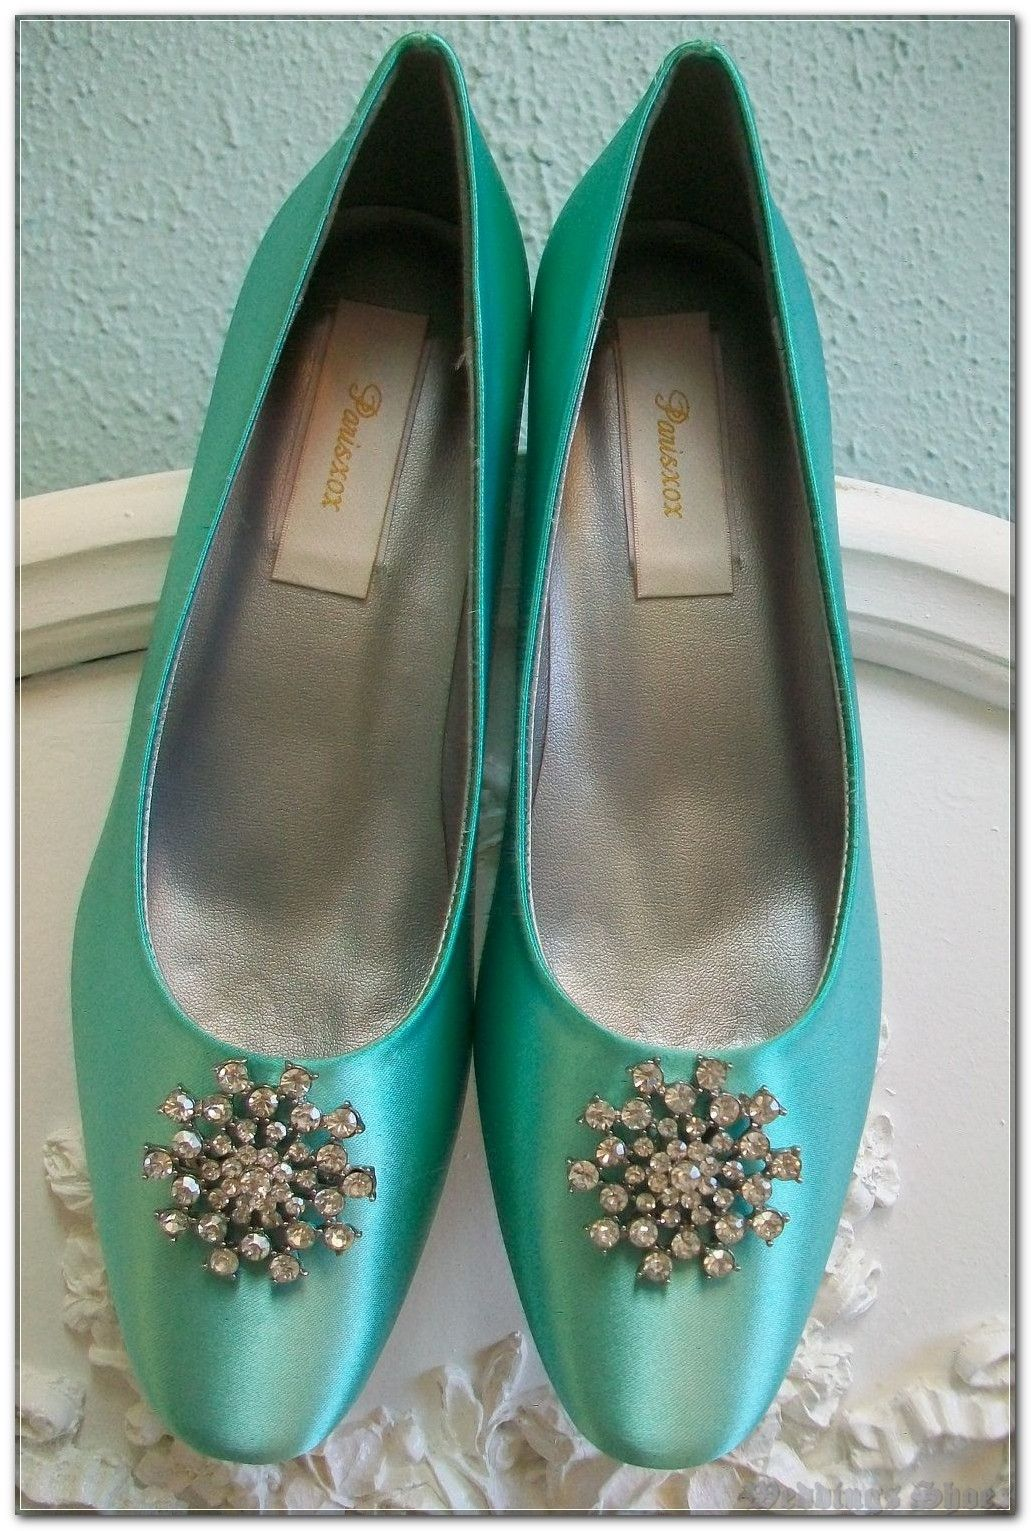 Find Out How I Cured My Wedding Shoes In 2 Days